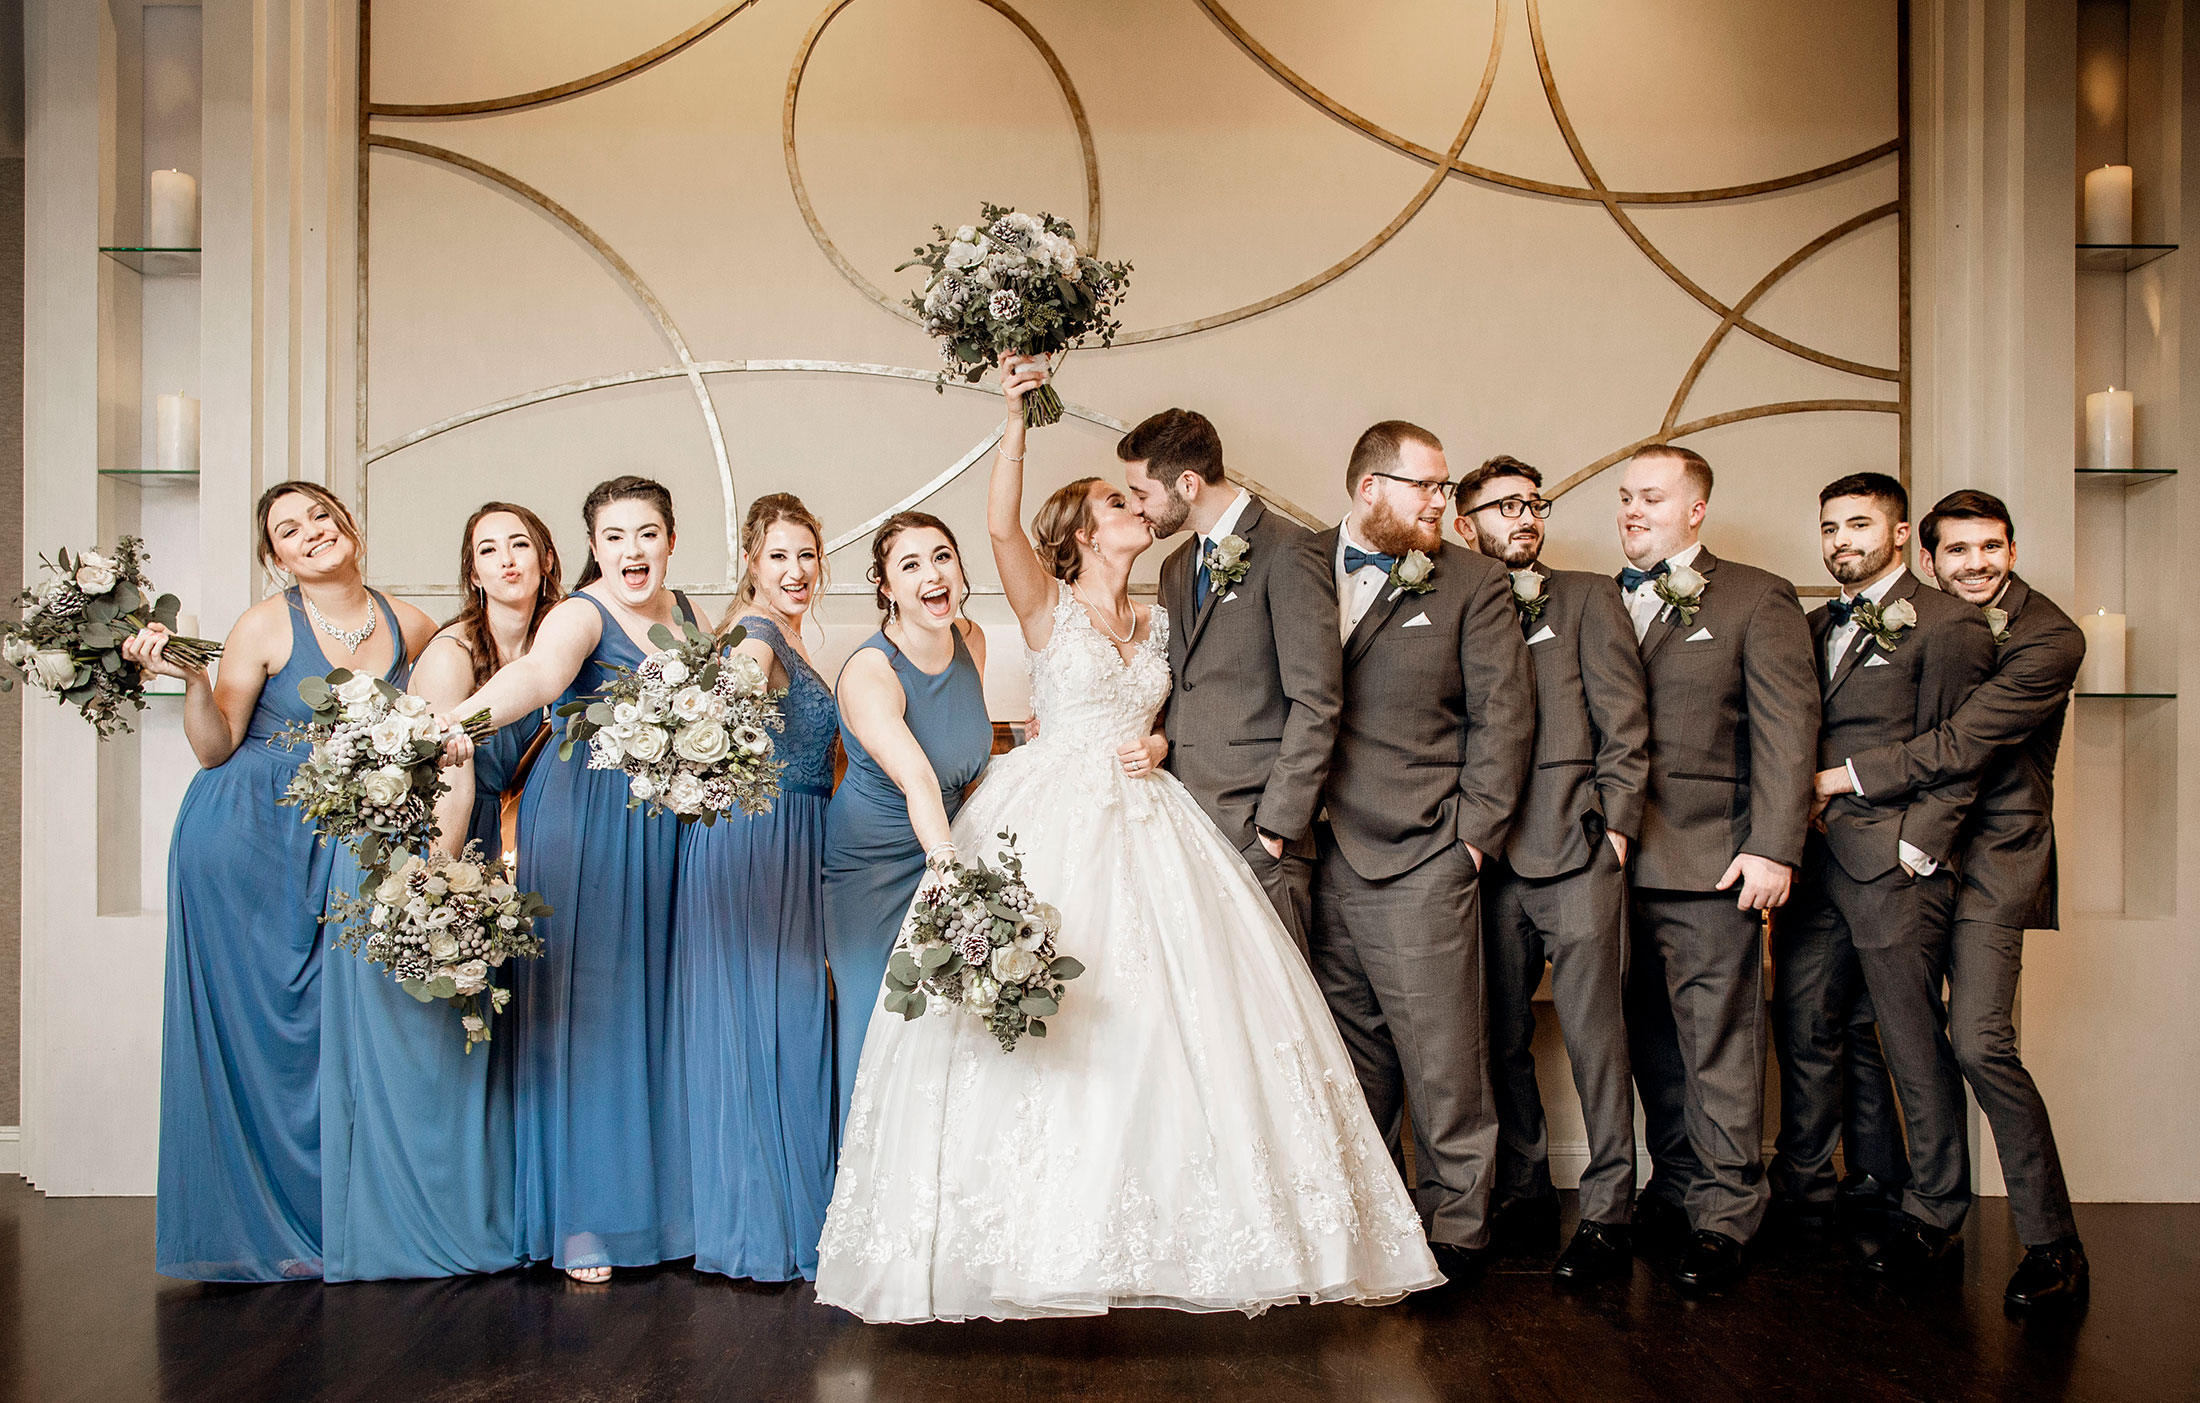 Indoor wedding party portraits